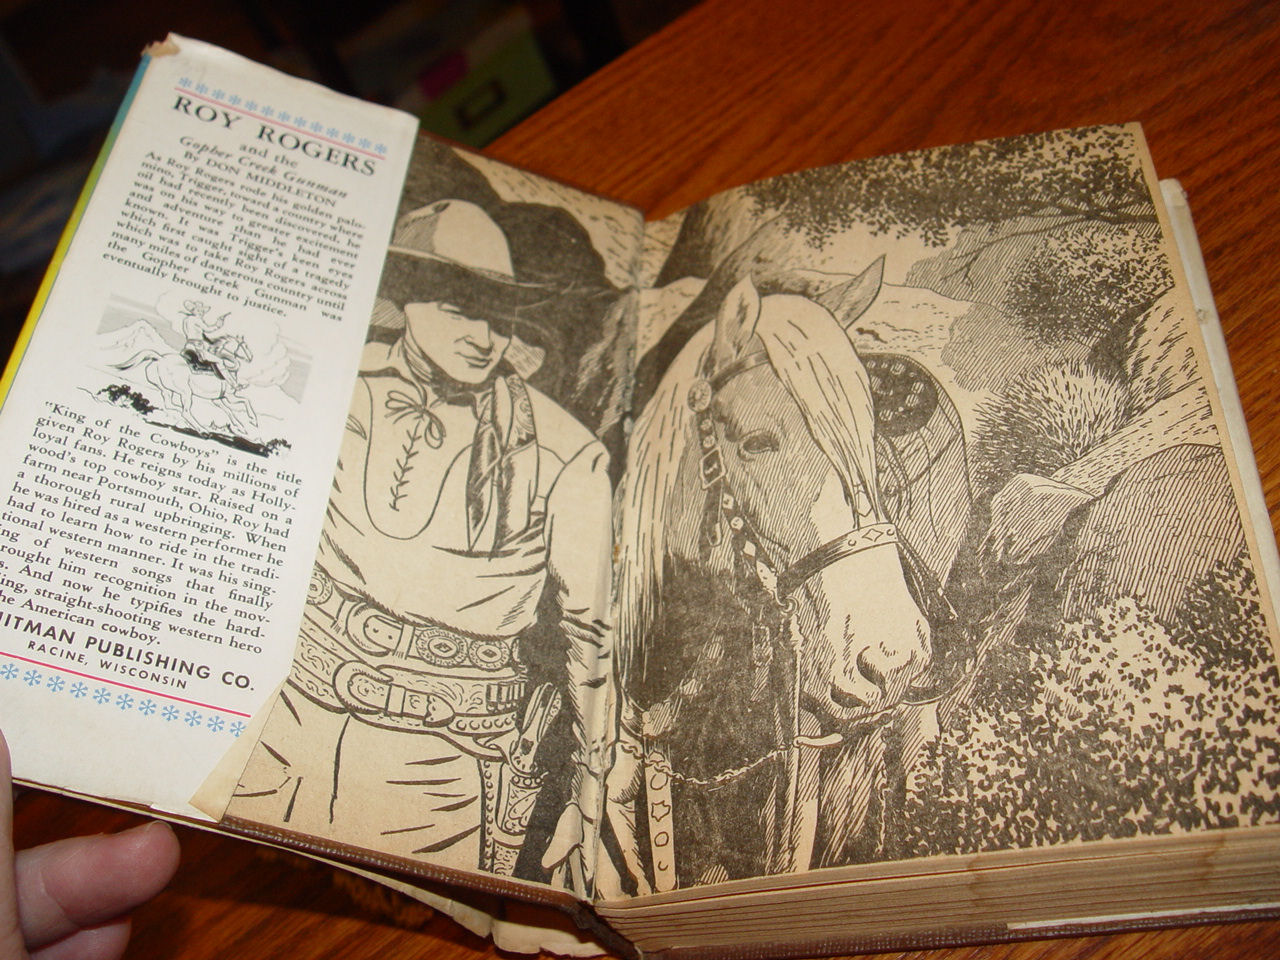 Roy Rogers And                                         The Gopher Creek Gunman : An                                         Original Story Featuring Roy                                         Rogers, Famous Motion Picture                                         Star, by Don Middleton 1945